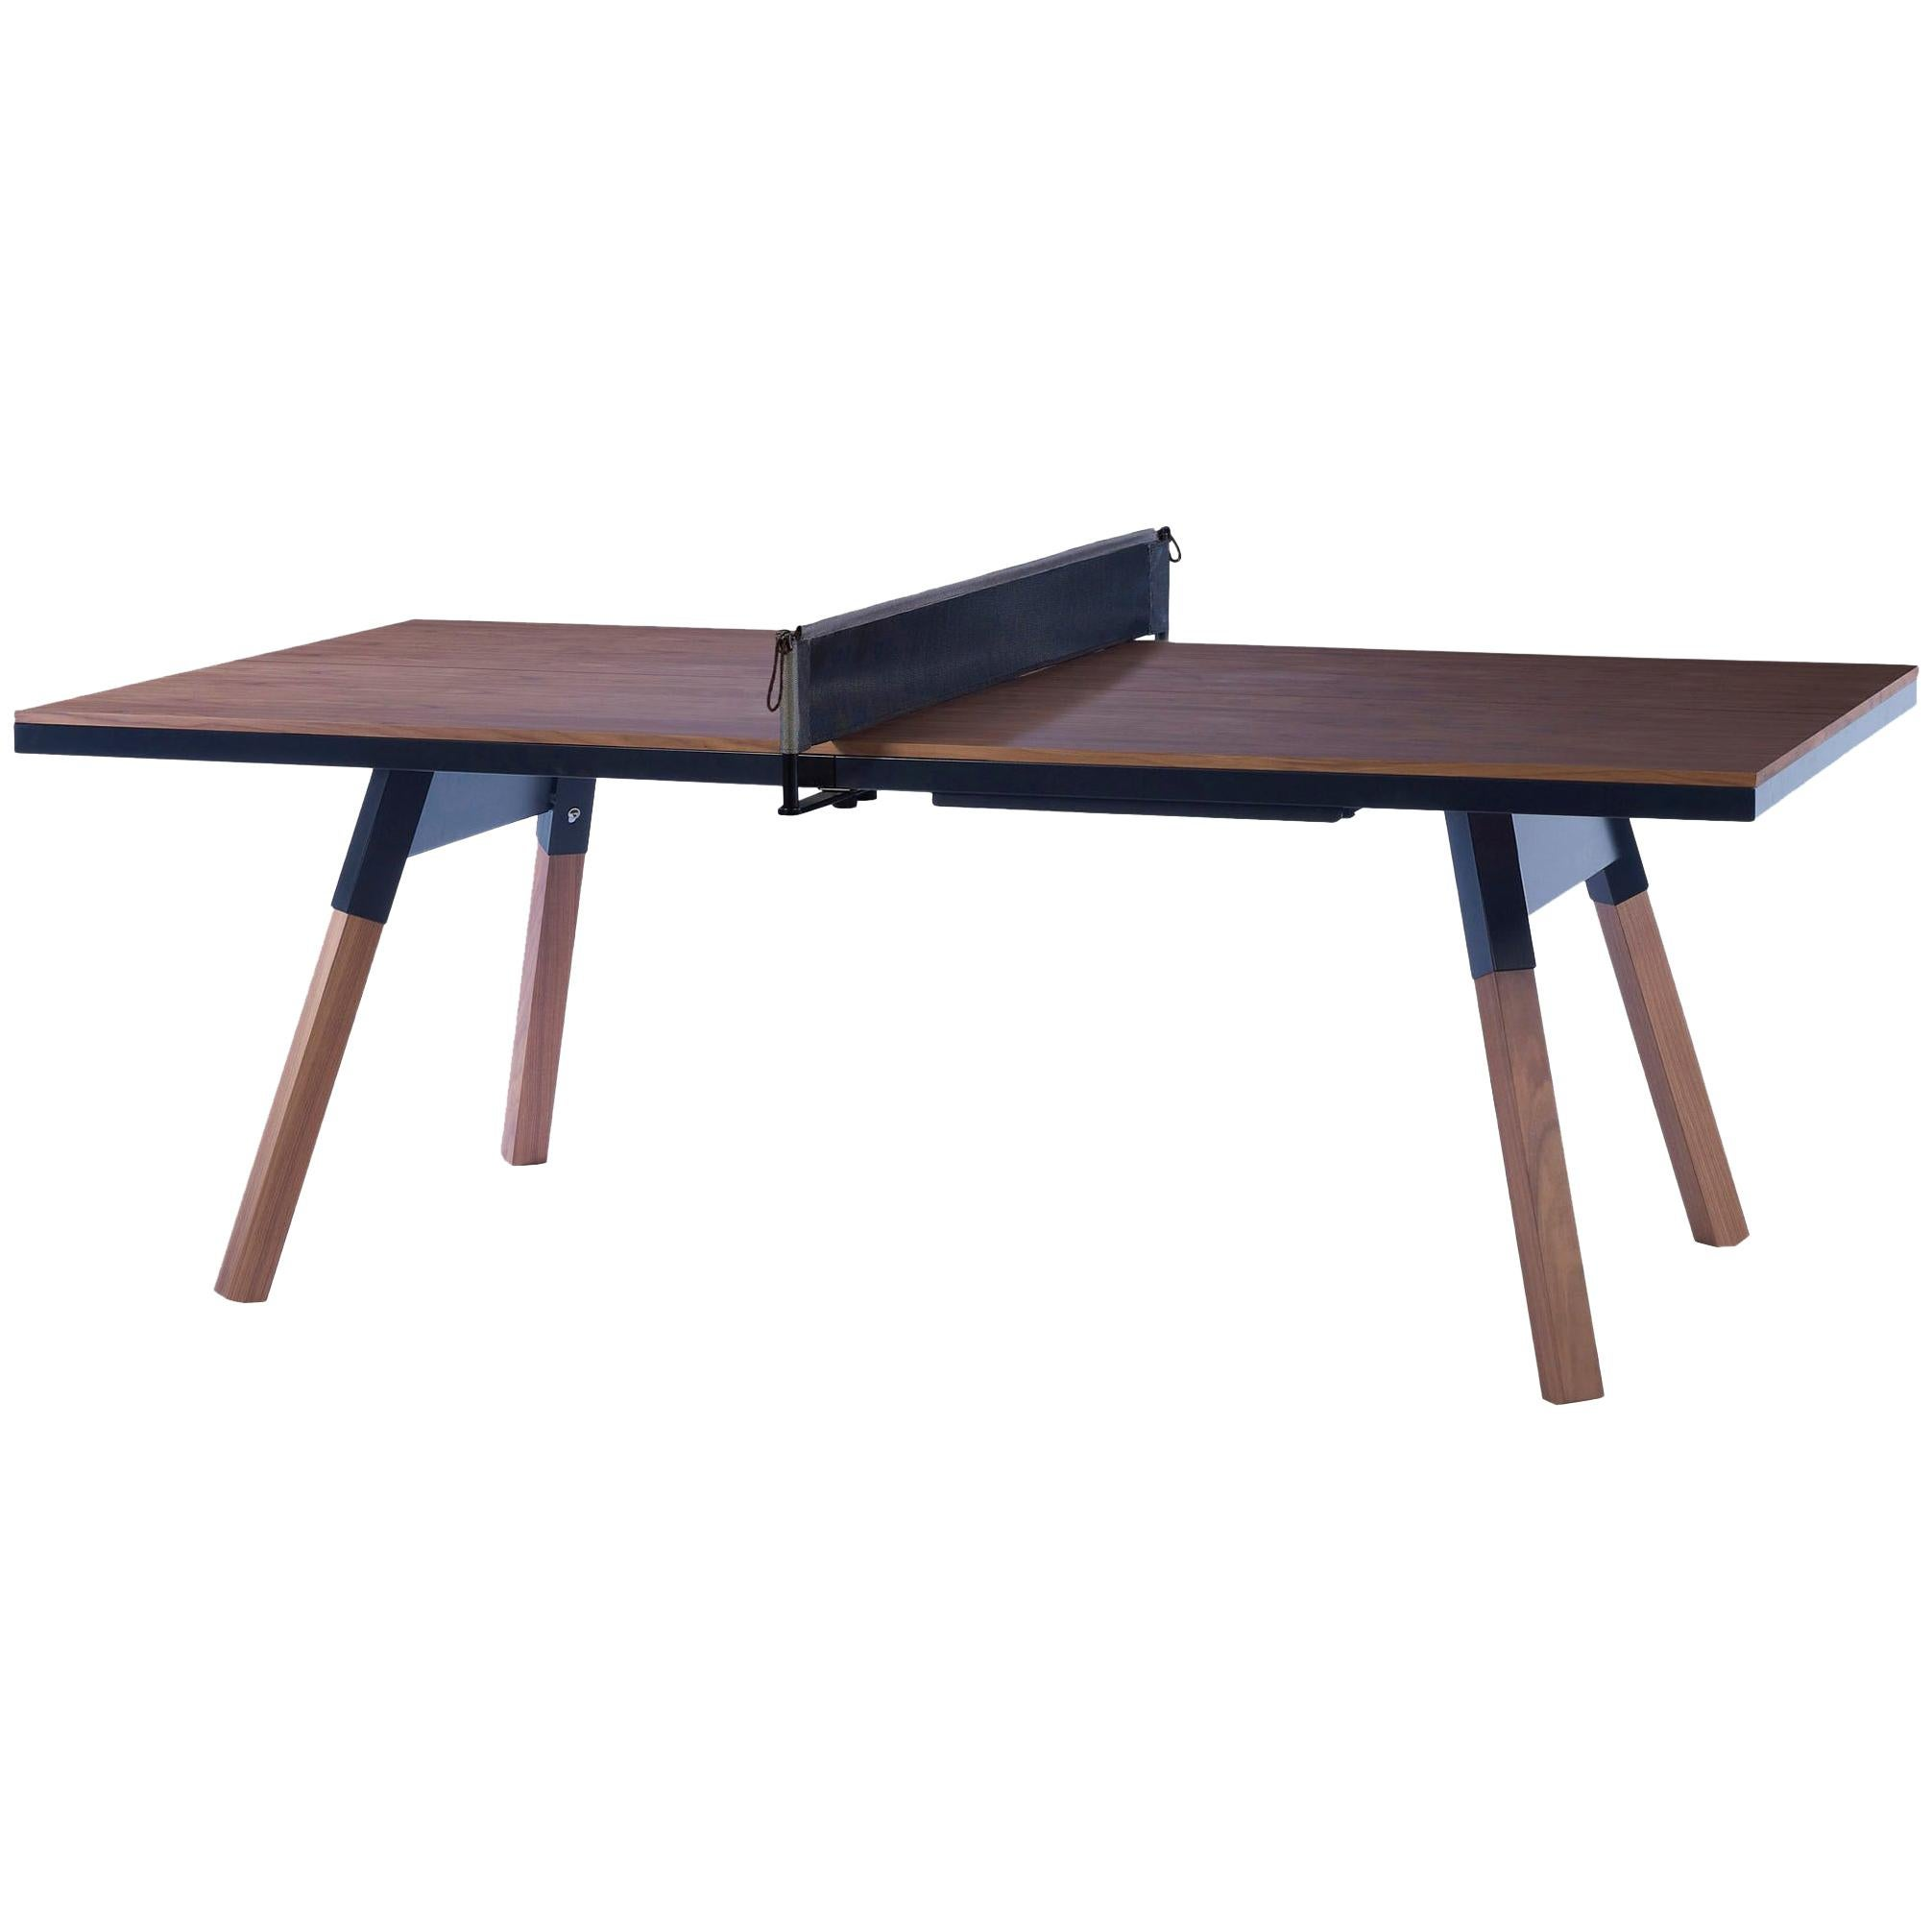 You & Me Wooden Top 220 Ping Pong Table in Walnut and Black by RS Barcelona